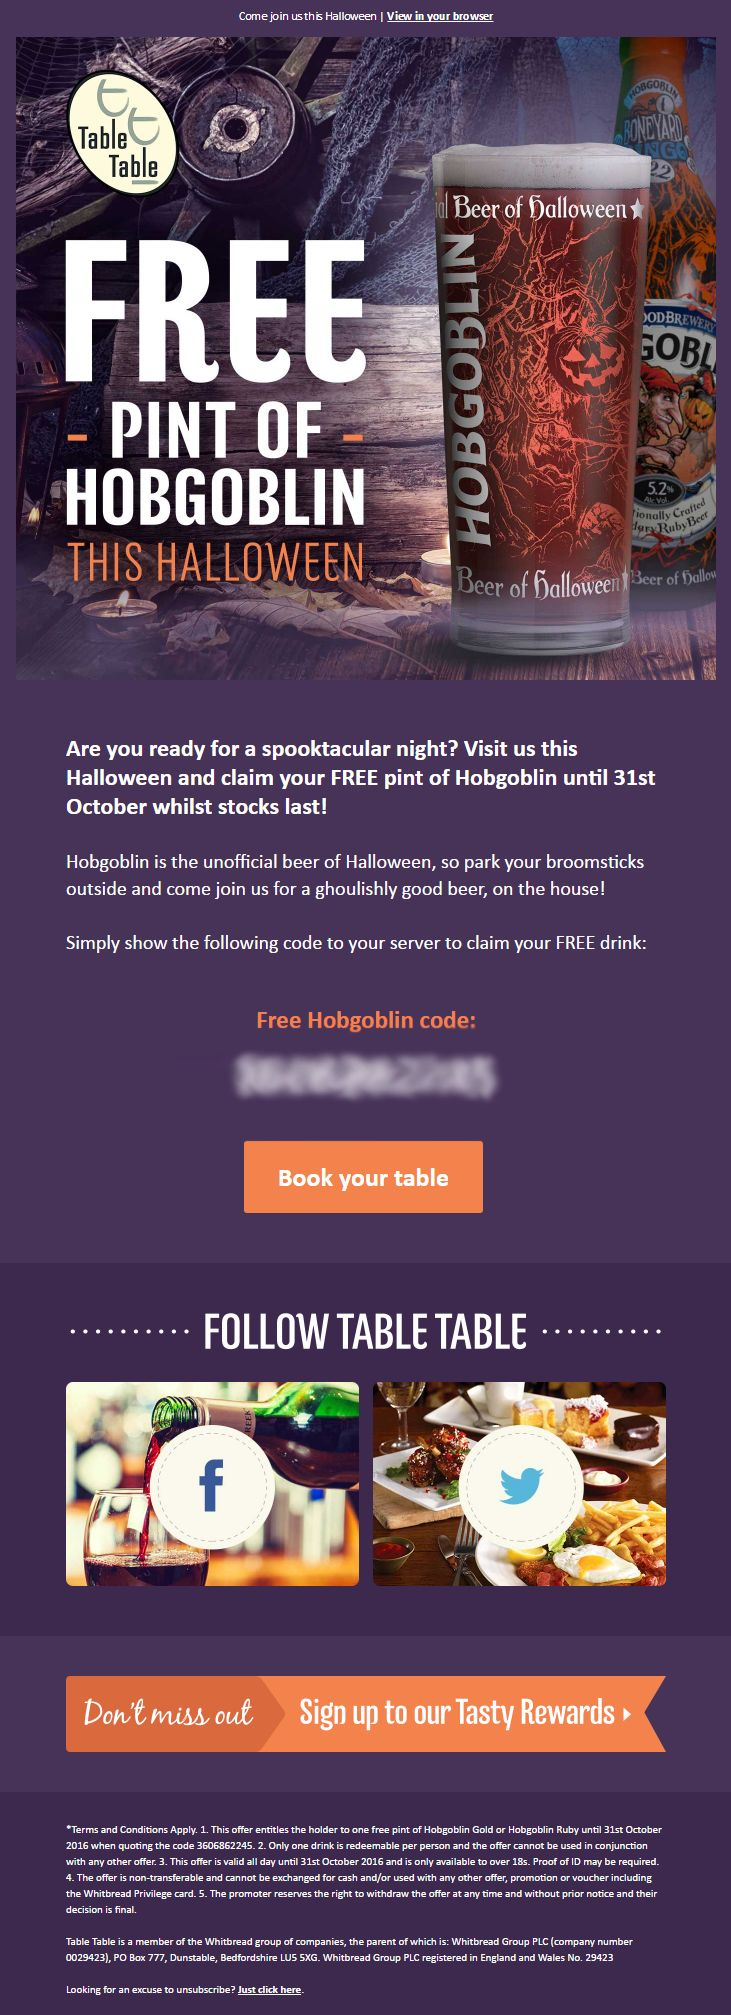 Best Halloween Emails Images On   Email Marketing